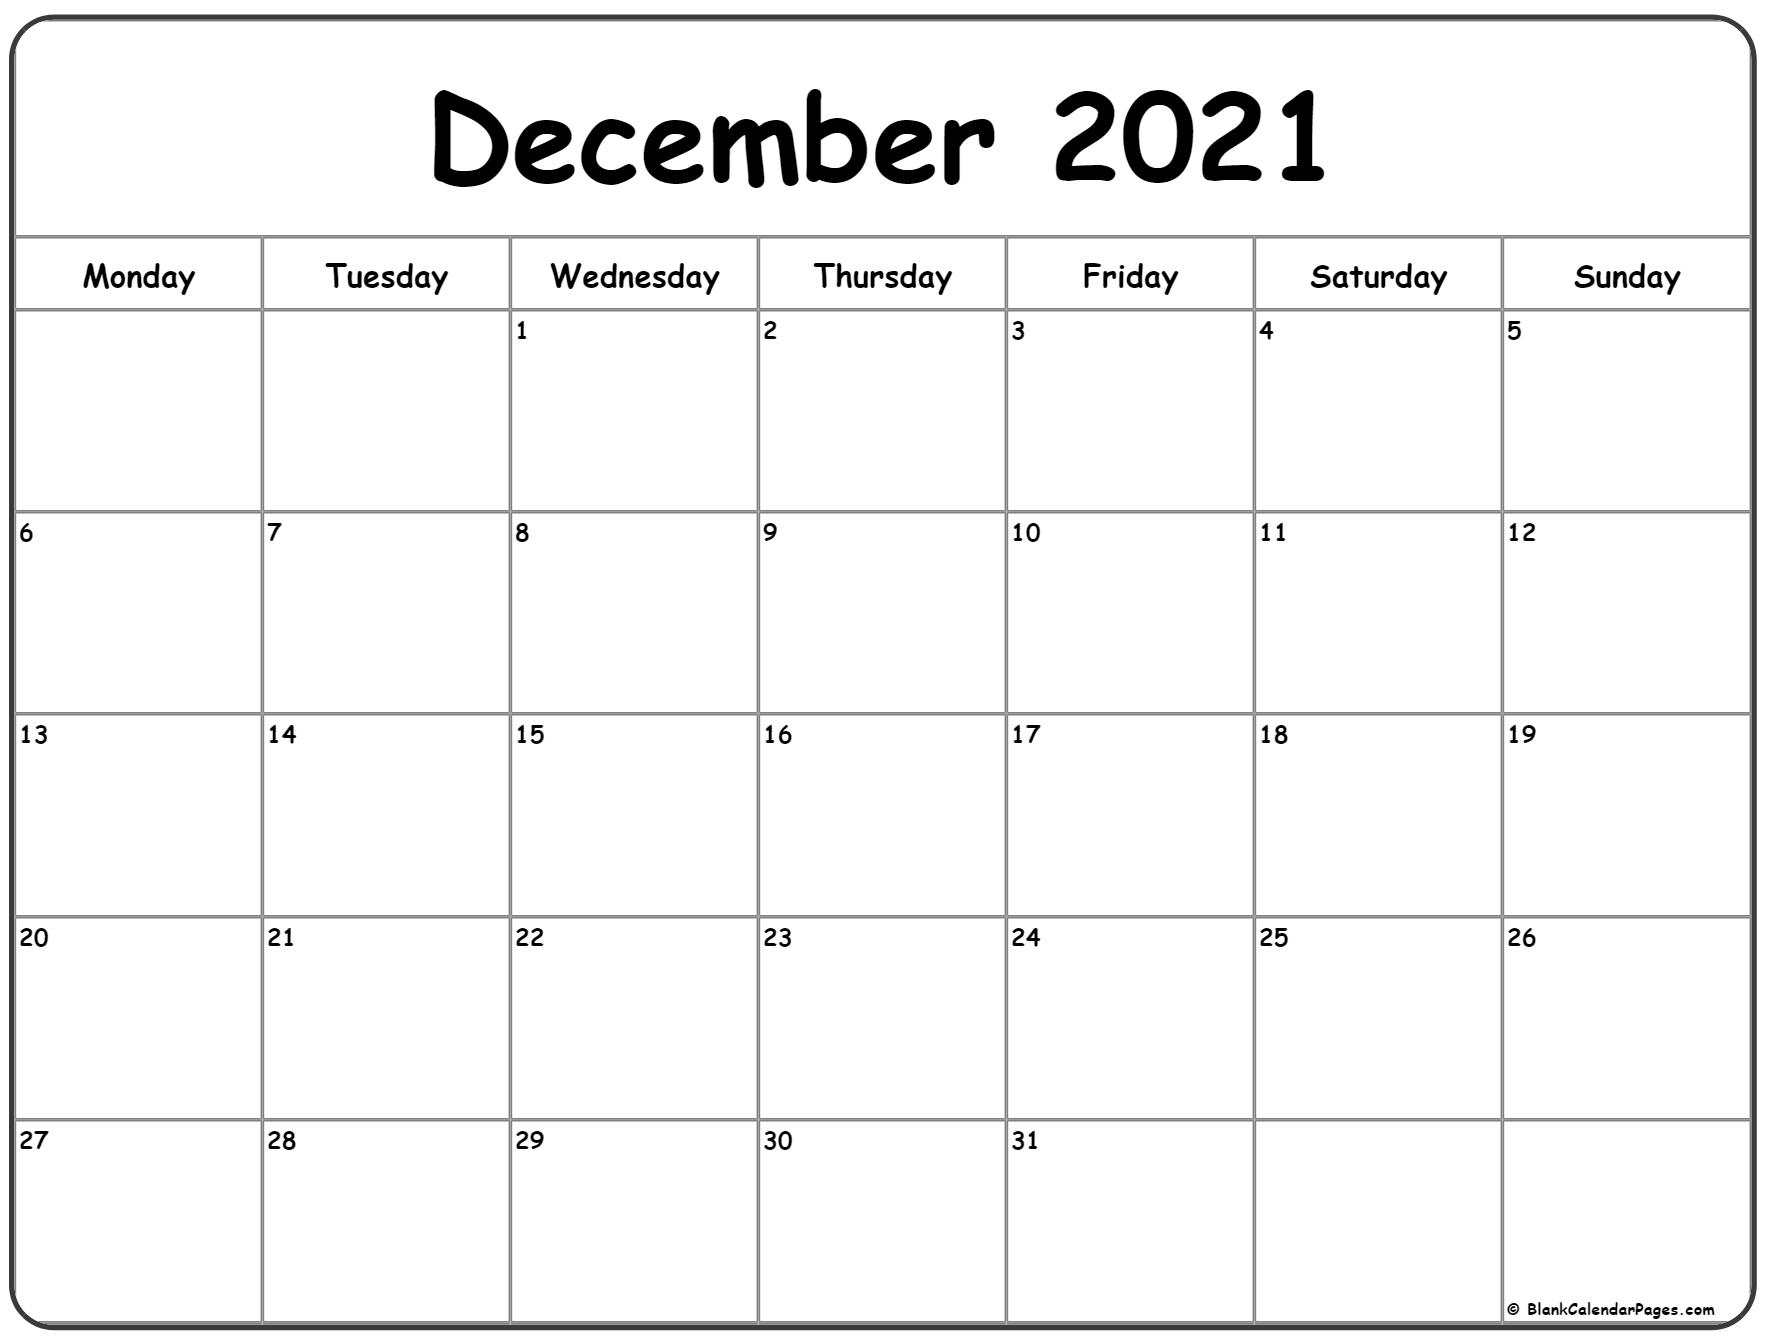 December 2021 Monday calendar. Monday to Sunday